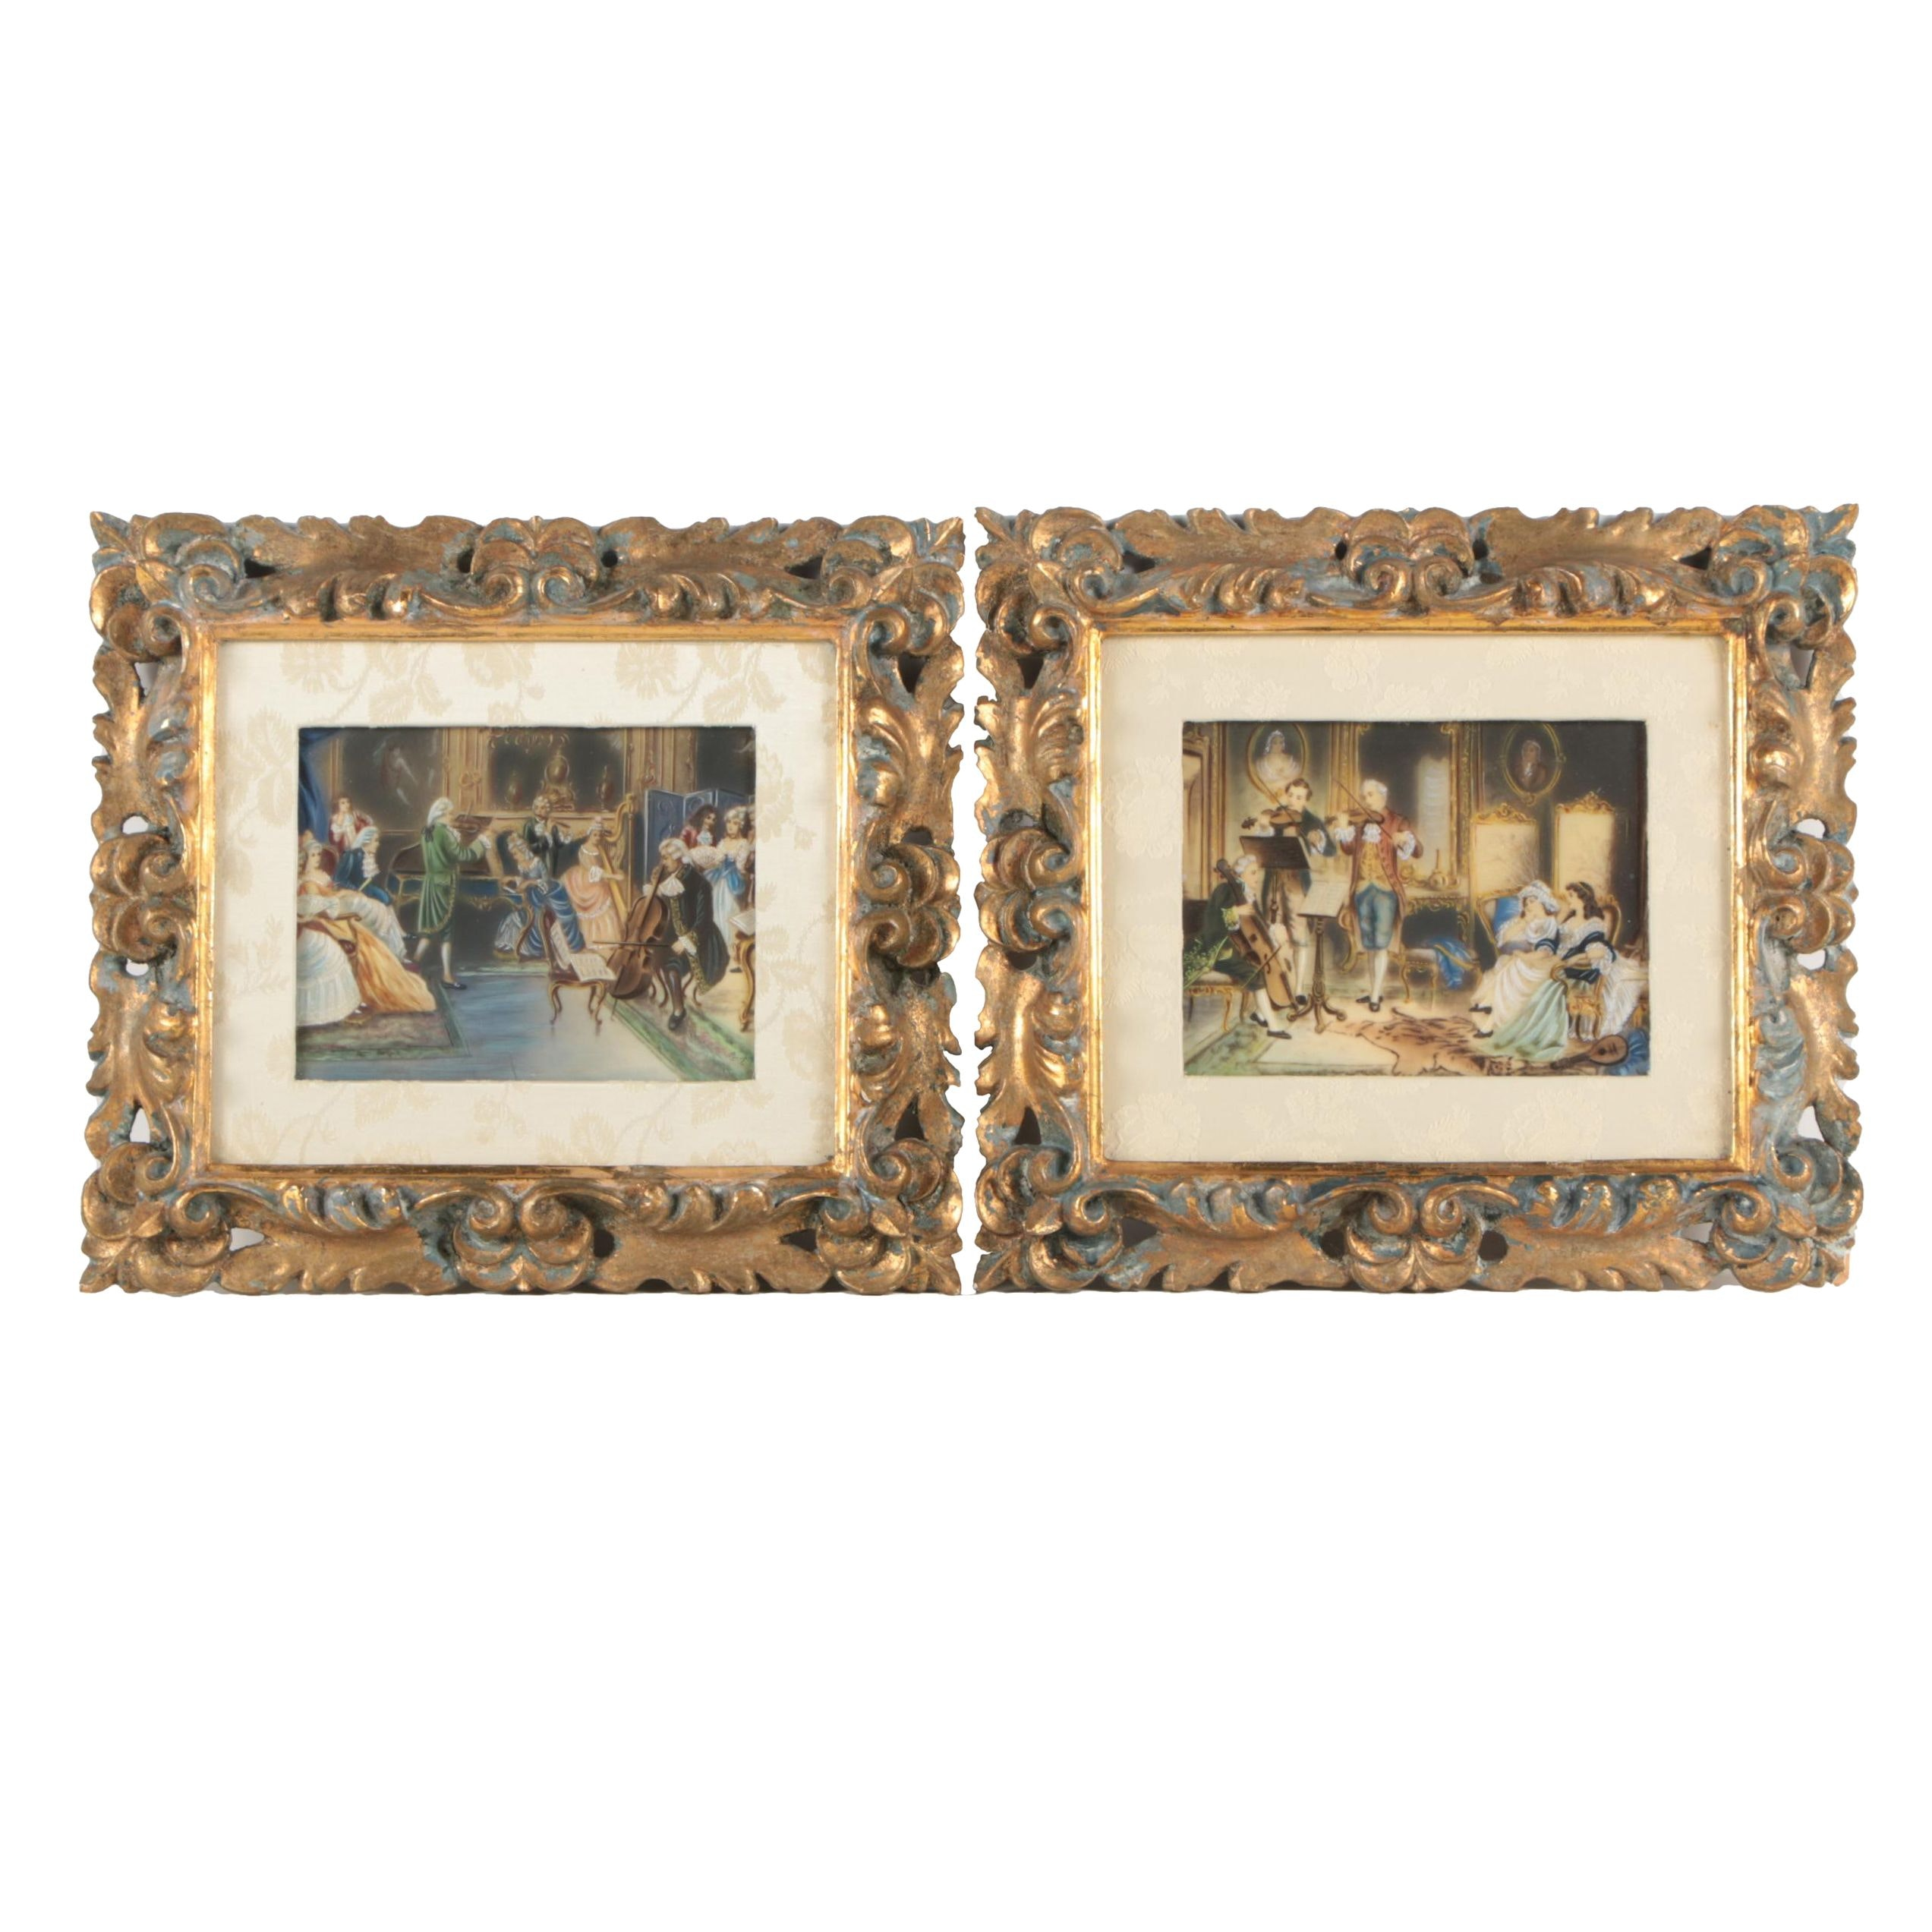 Watercolor and Gouache Paintings on Vellum of European Parlor Scenes